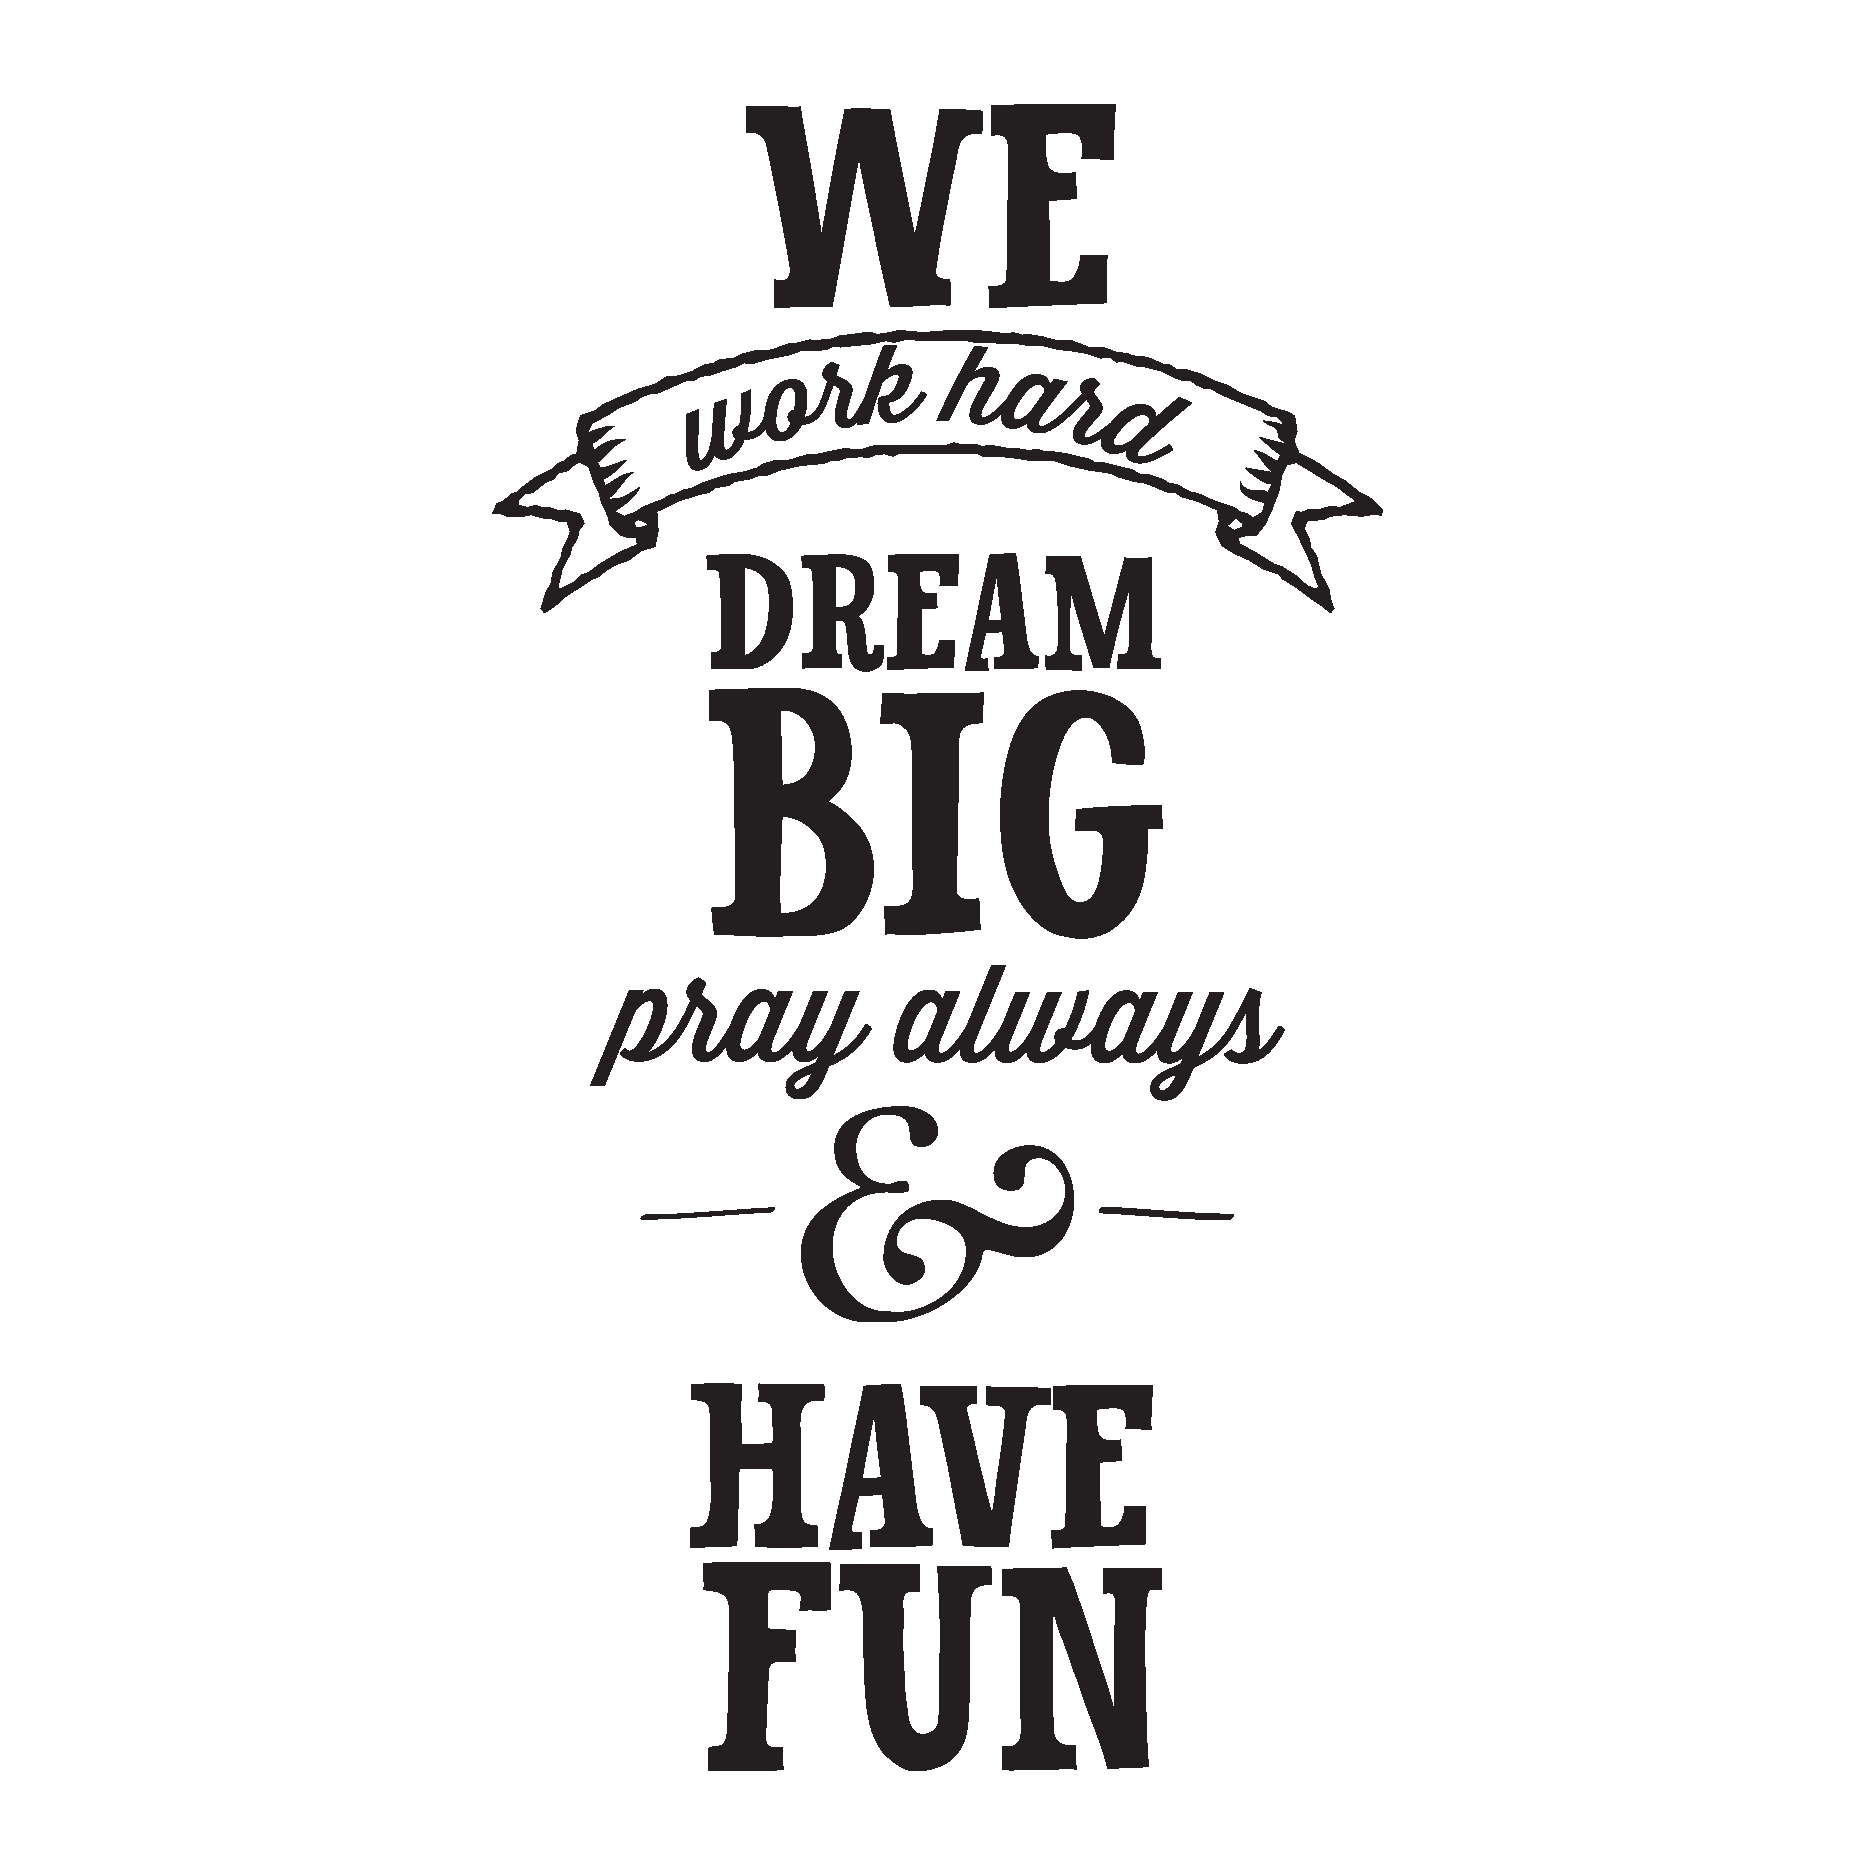 Quotes About Hard Work And Dreams: We Work Hard Dream Big Wall Qutoes™ Decal